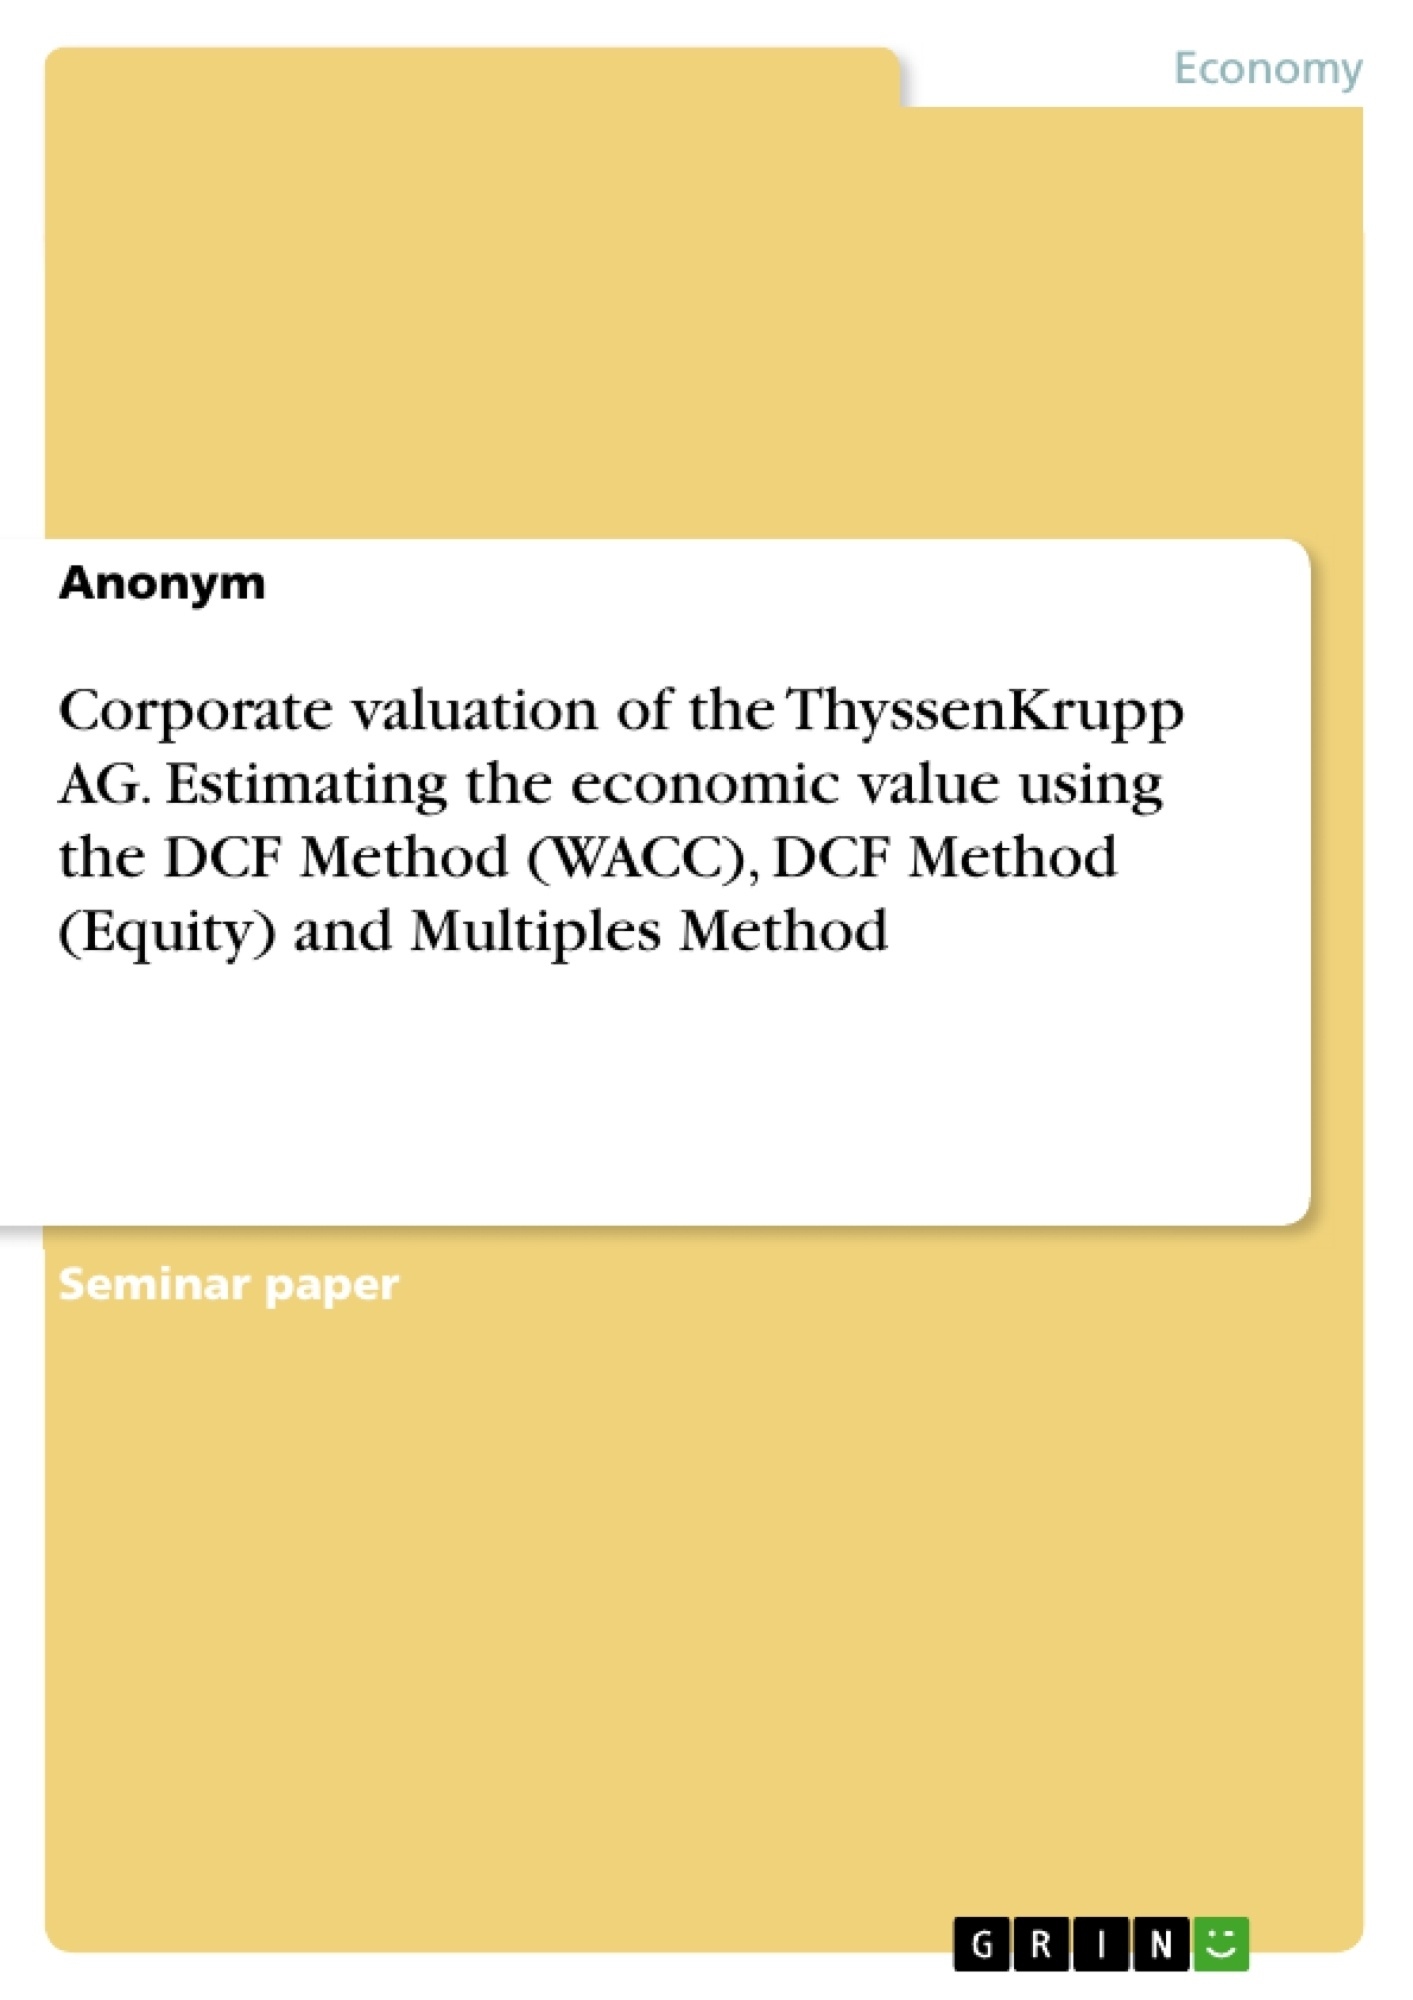 Title: Corporate valuation of the ThyssenKrupp AG. Estimating the economic value using the DCF Method (WACC), DCF Method (Equity) and Multiples Method